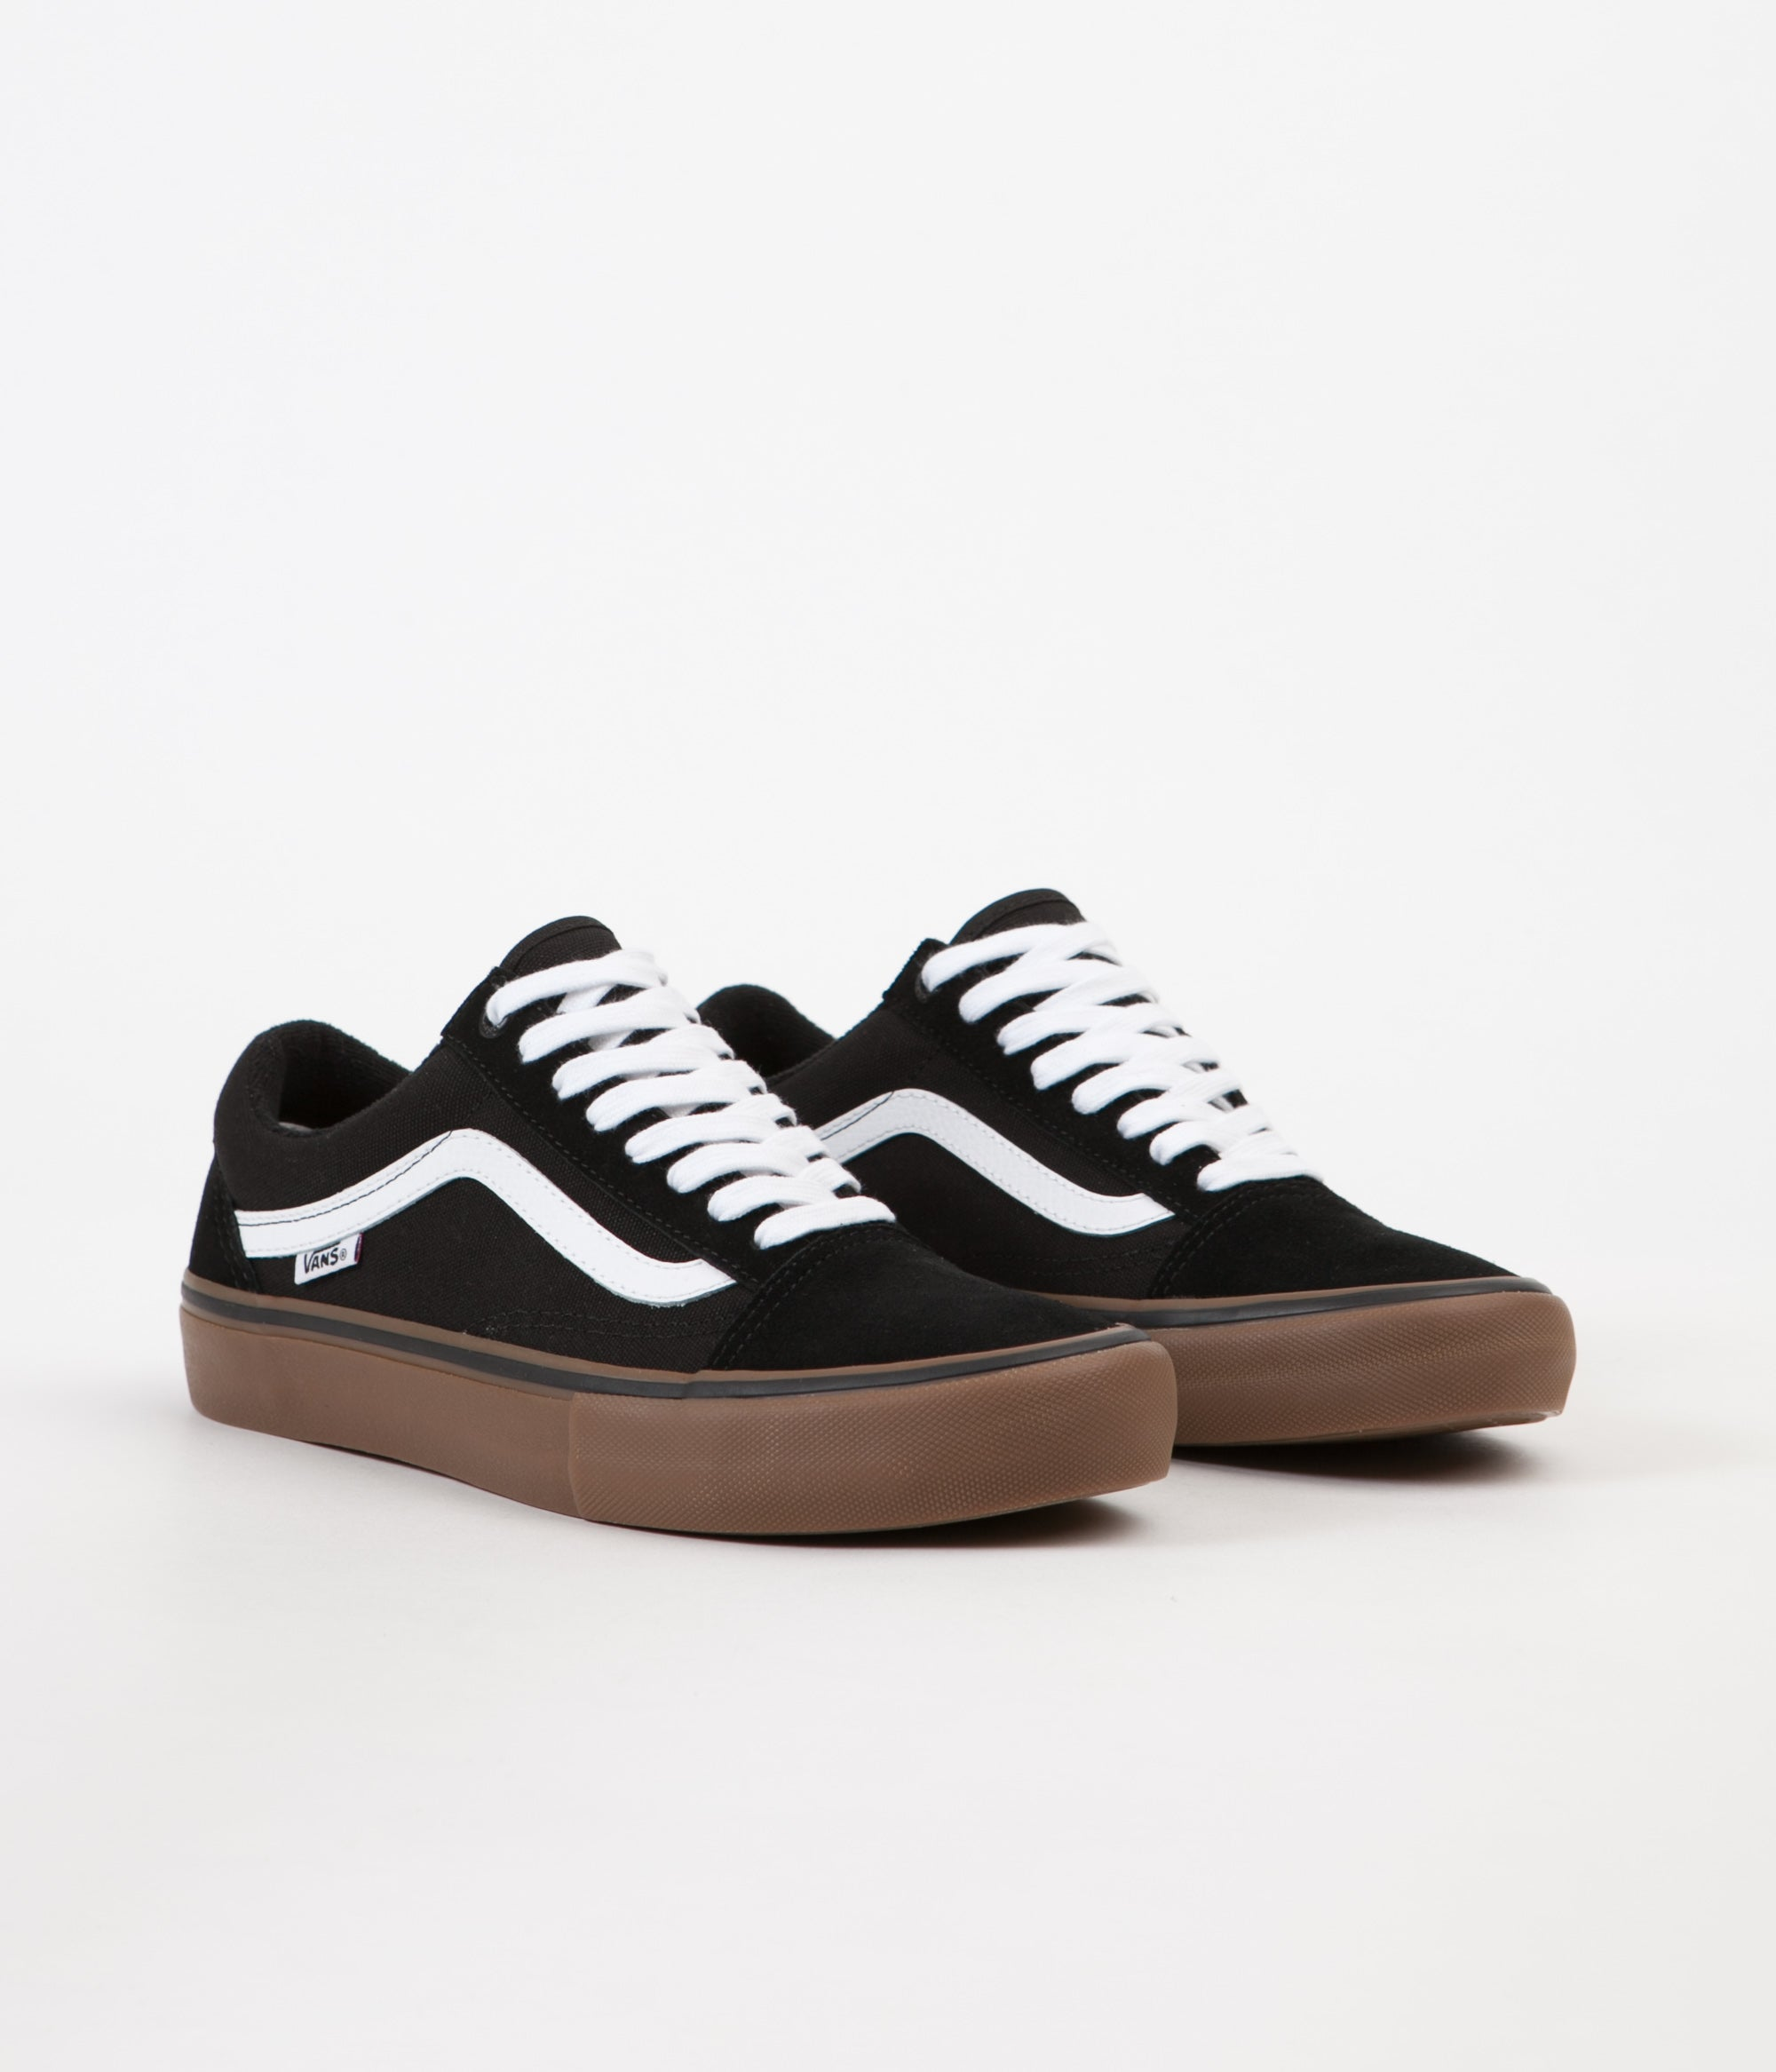 8b9764c4855 ... Vans Old Skool Pro Shoes - Black   White   Medium Gum ...